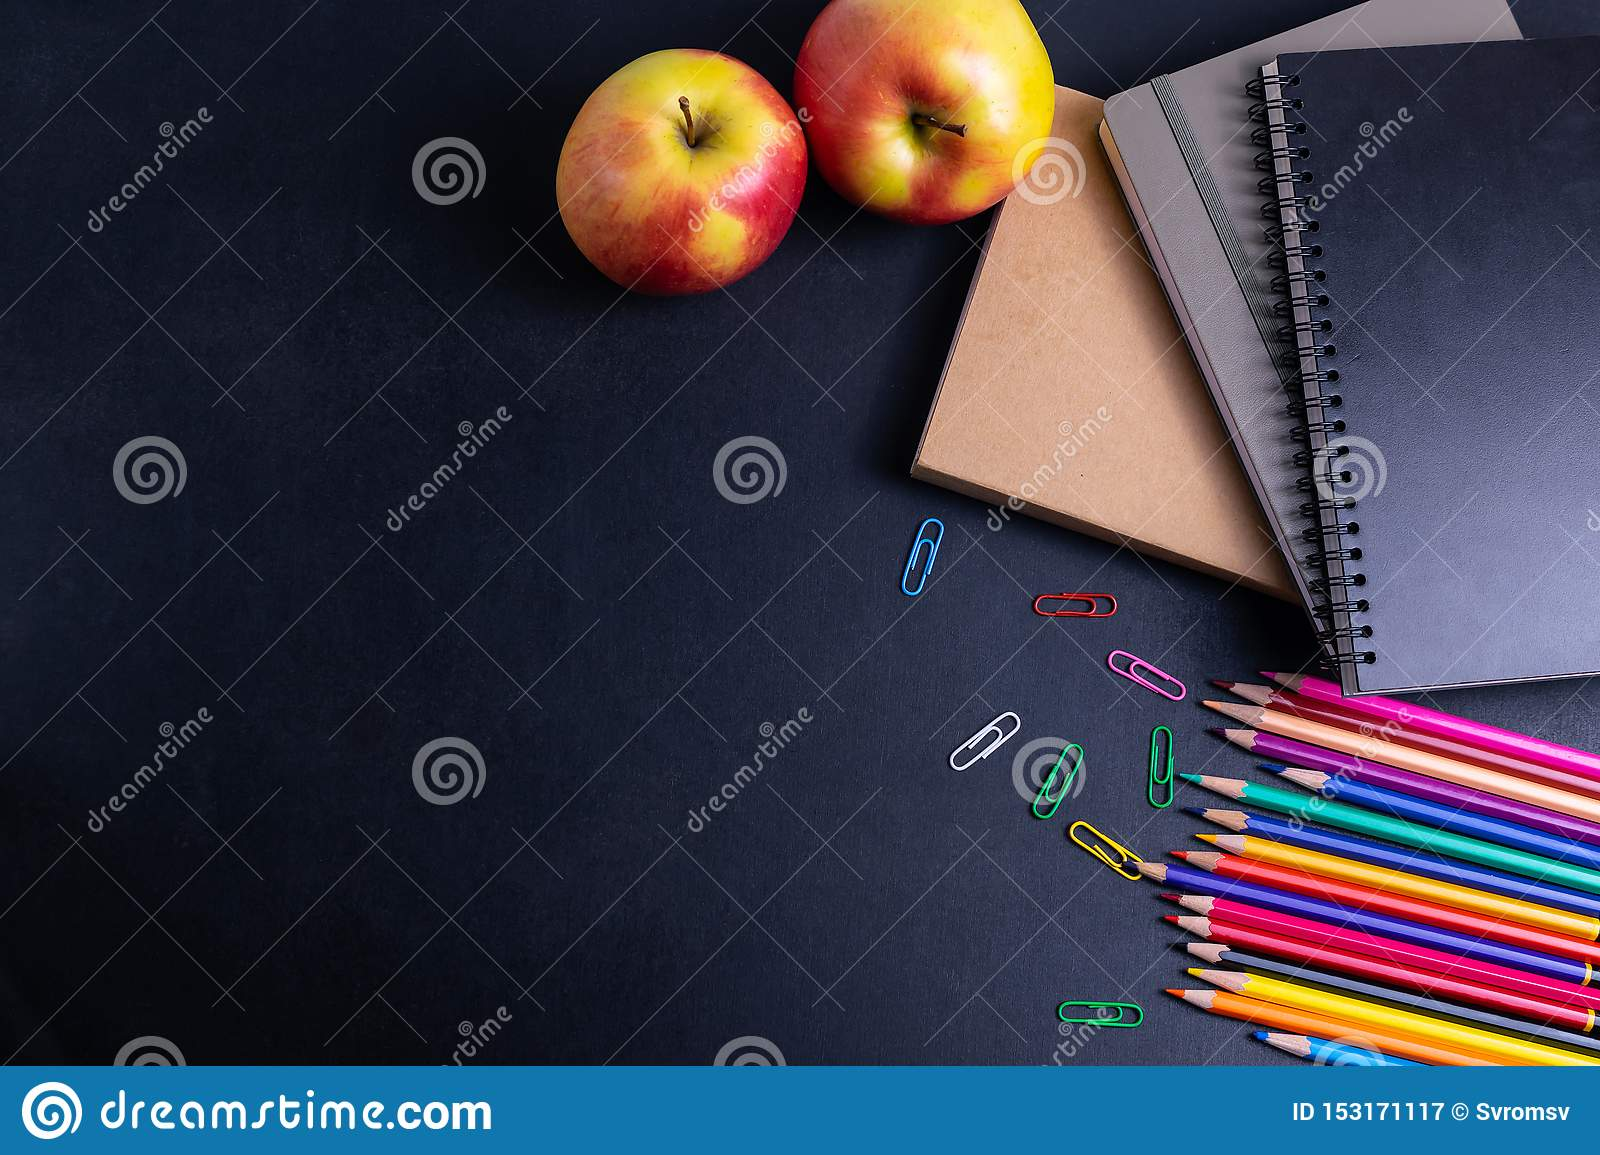 Back to school background with books and apple on blackboard flat lay